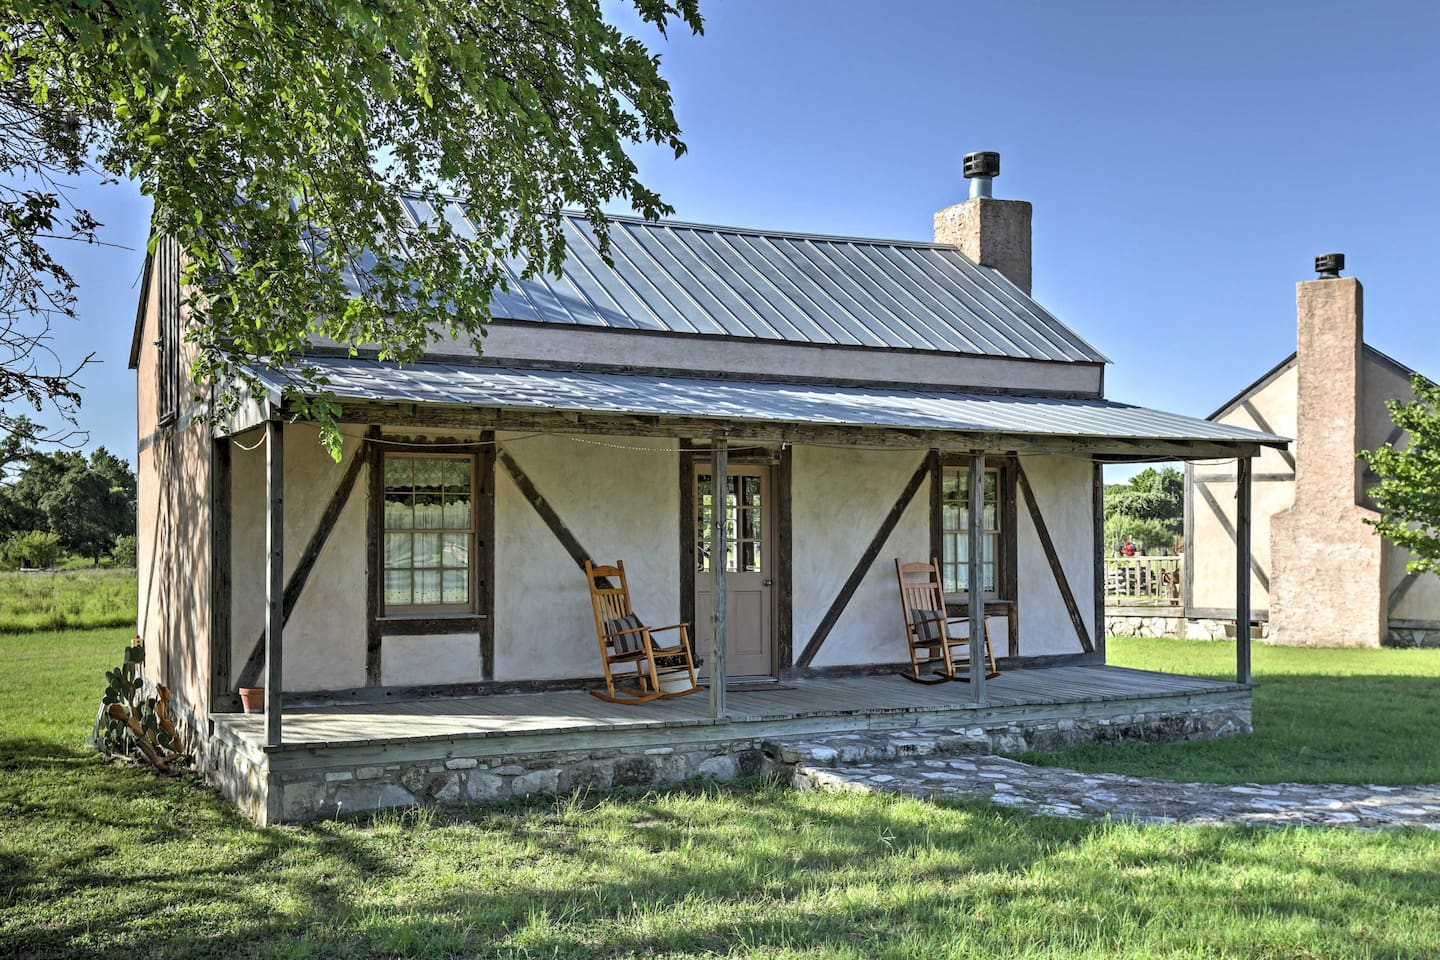 Pack your bags for Texas and this charming 1-bedroom, 1-bathroom Fredericksburg vacation rental cottage, which sleeps 2!